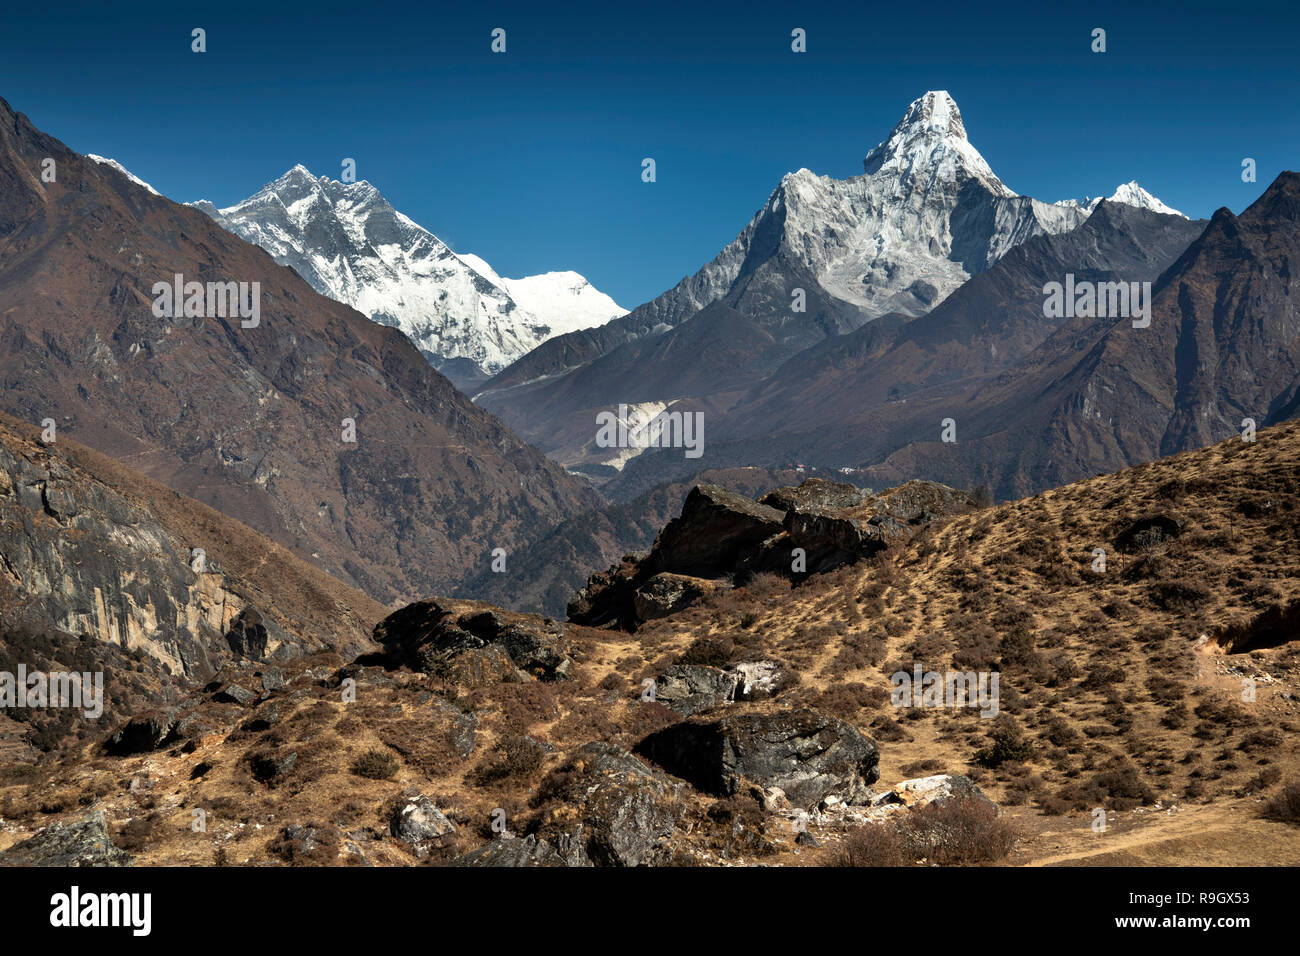 Nepal, Everest Base Camp Trek, Khumjung, view north to Lhotse and Ama Dablam mountains - Stock Image